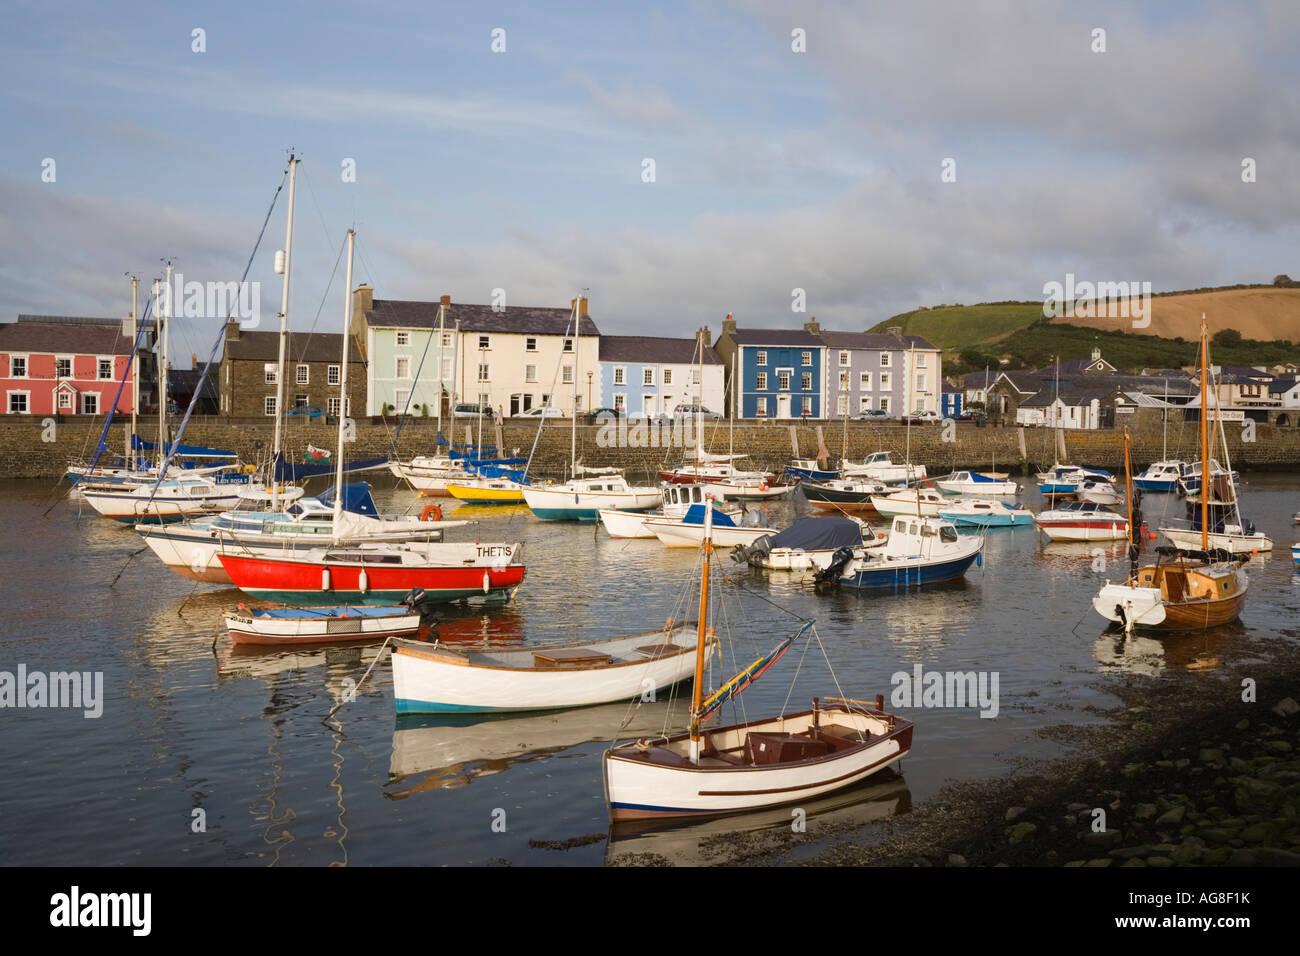 View across harbour with boats moored and colourful Georgian quayside houses in seaside town Aberaeron Ceredigion - Stock Image